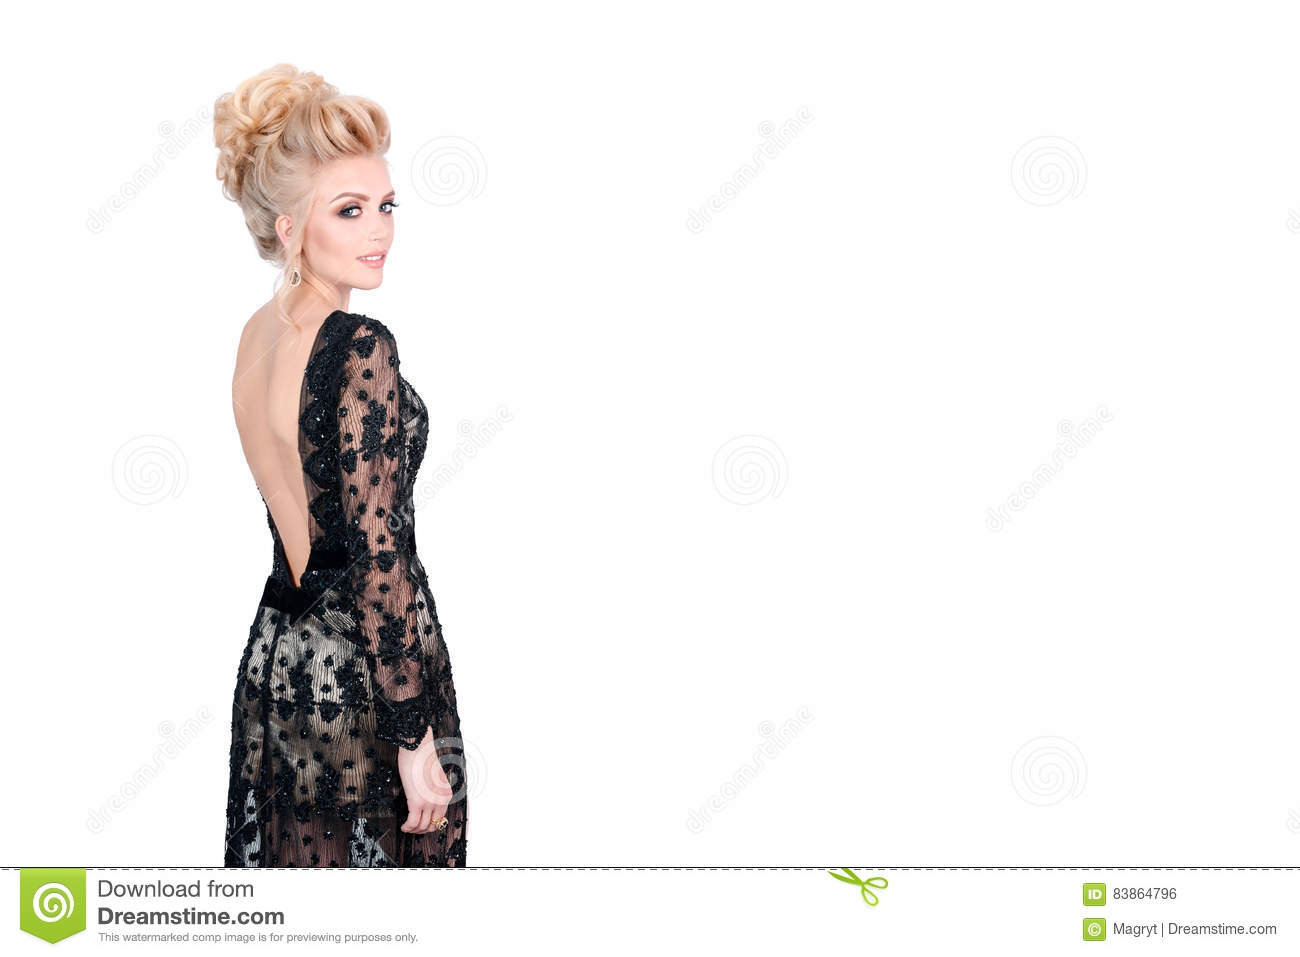 Looking for Evening Dresses